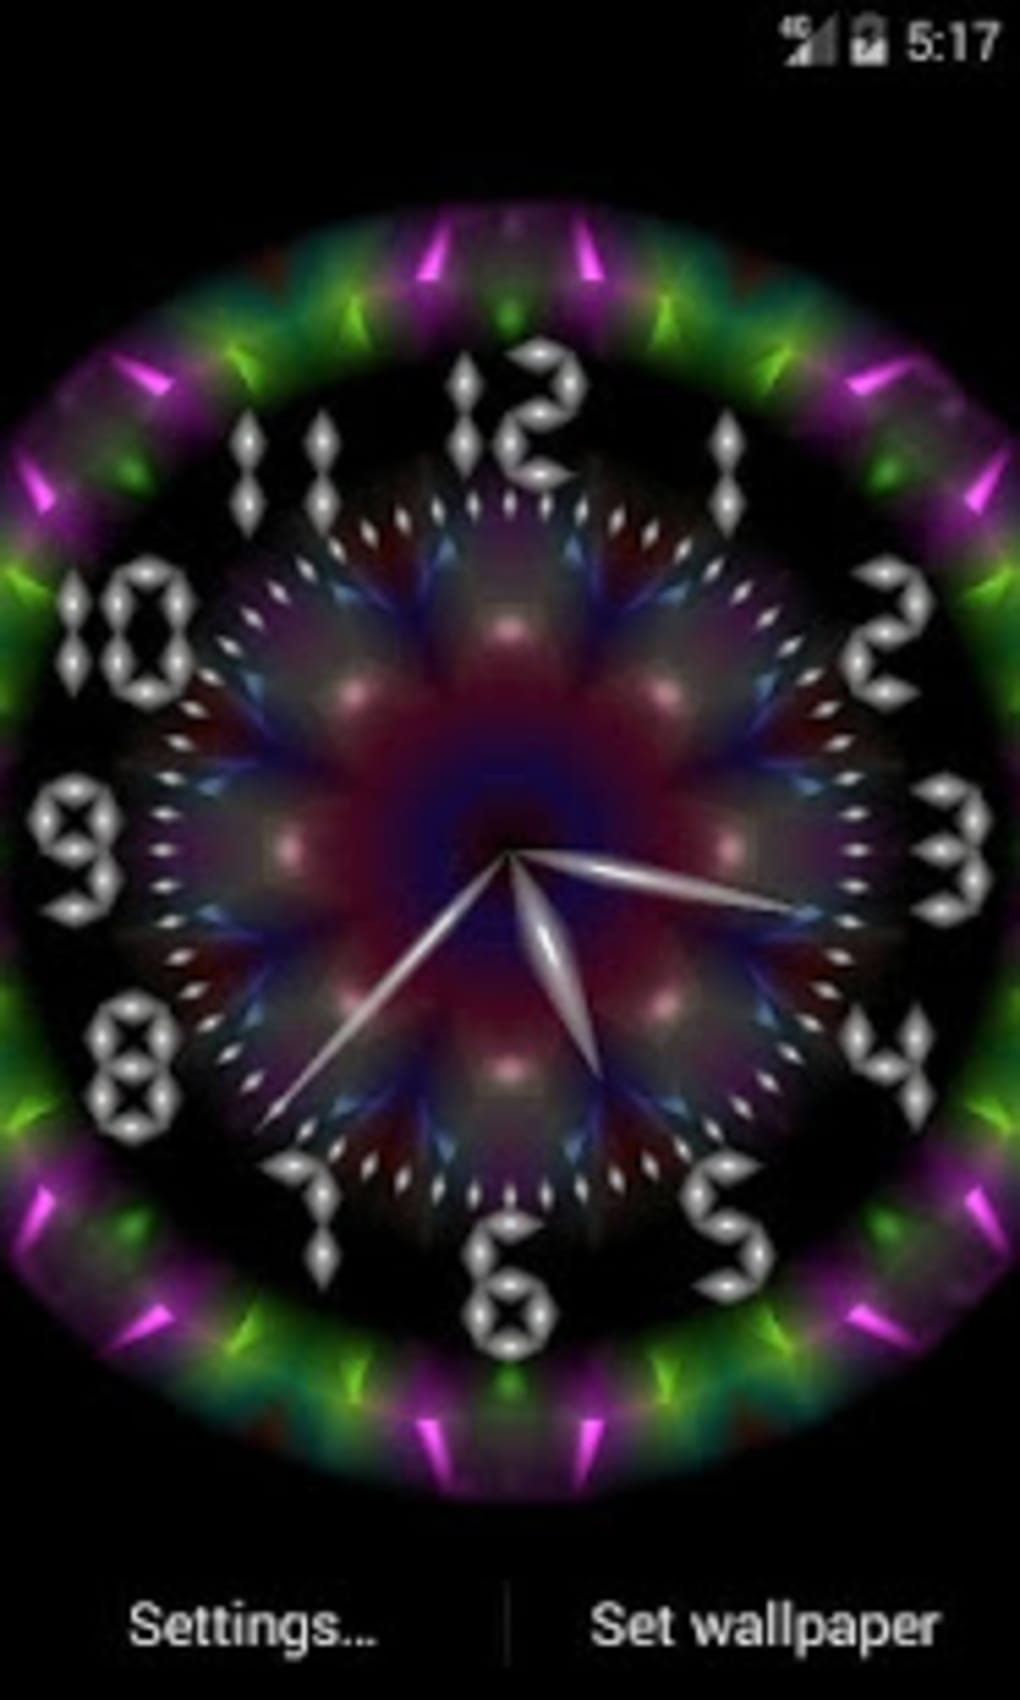 Clock Live Wallpaper APK for Android - Download